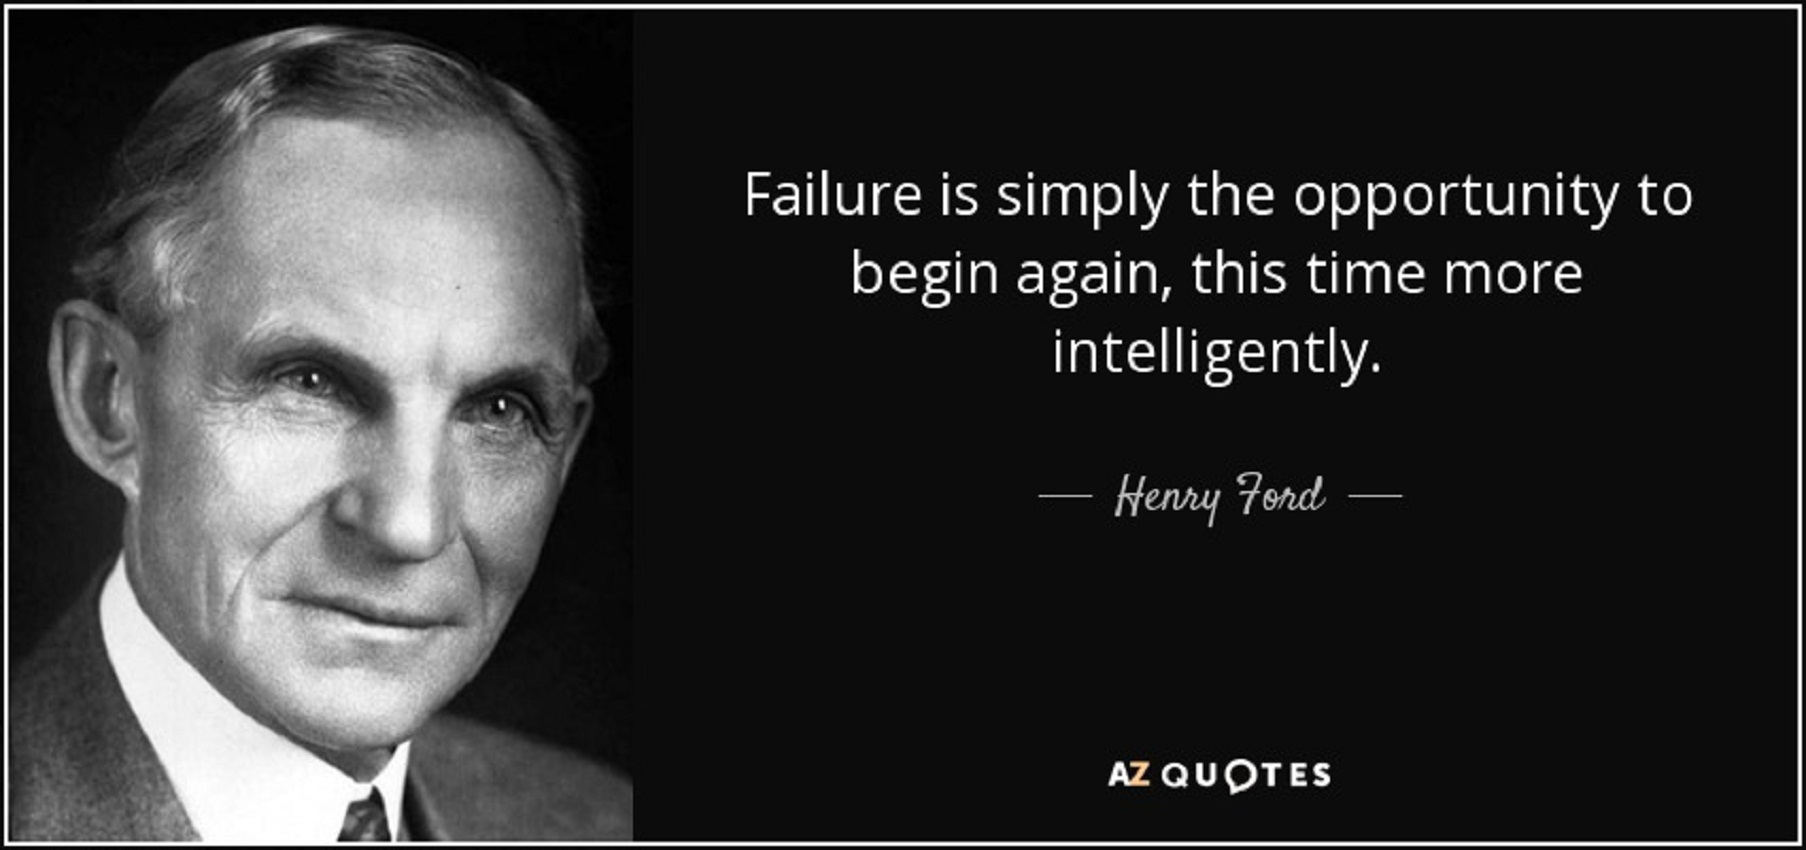 Failure Is Simply The Opportunity To Begin Again But This